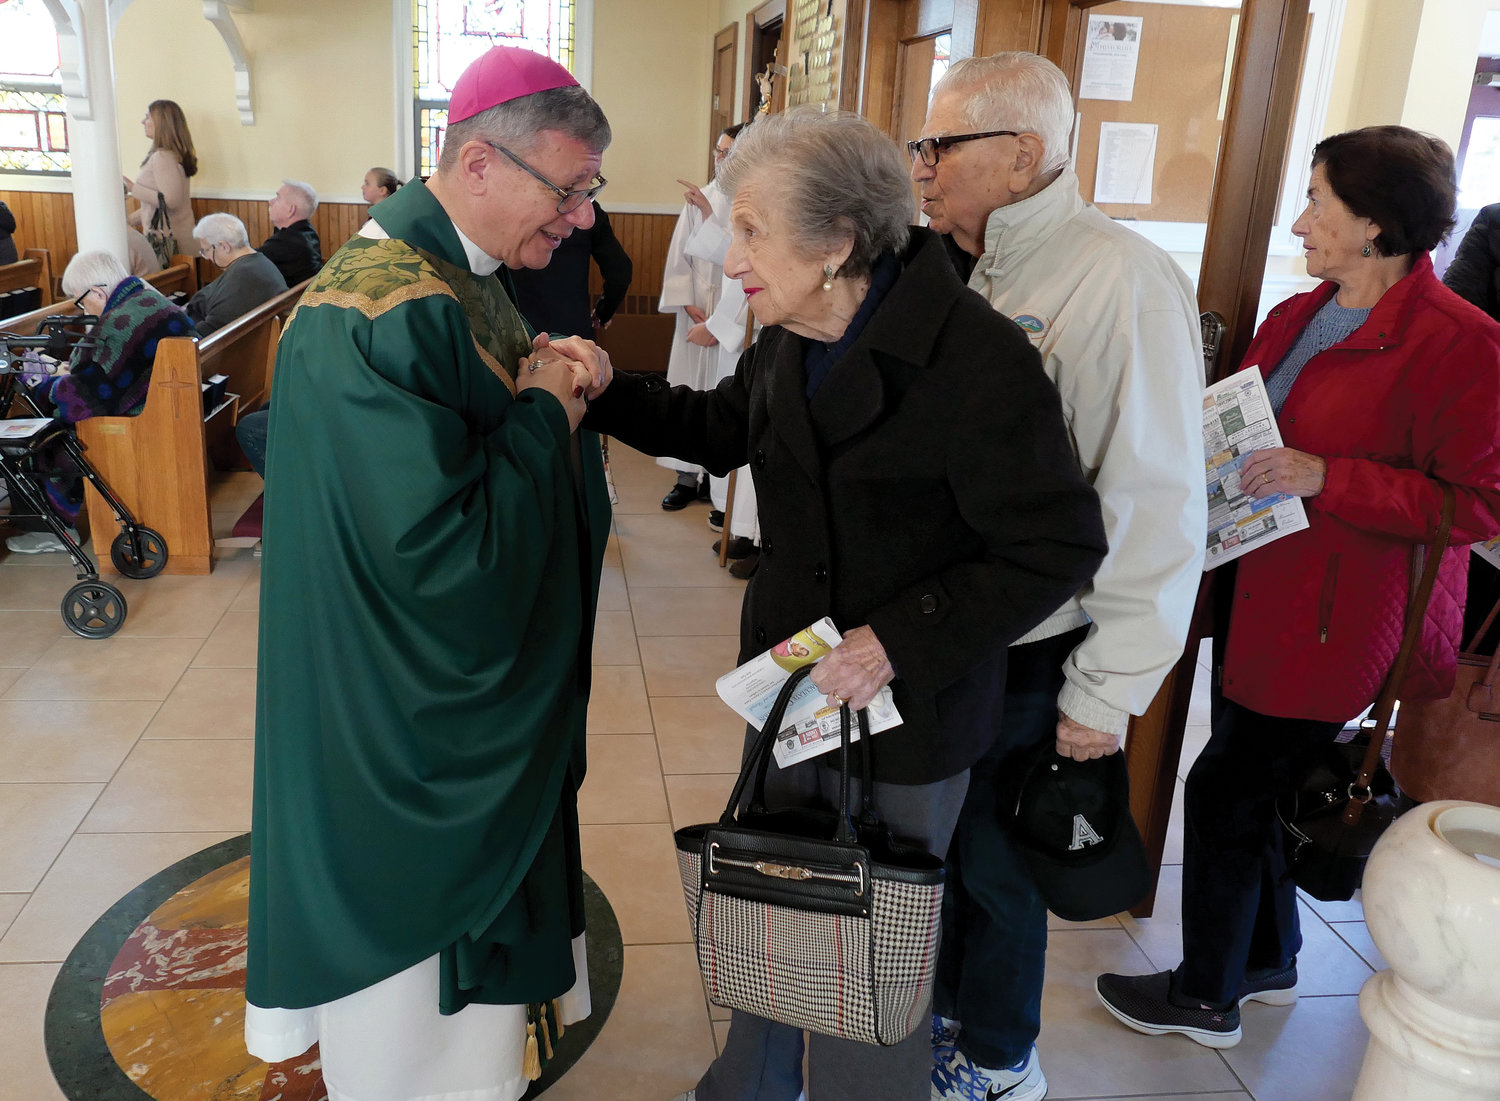 Bishop-elect Colacicco offers an inviting pastoral presence.